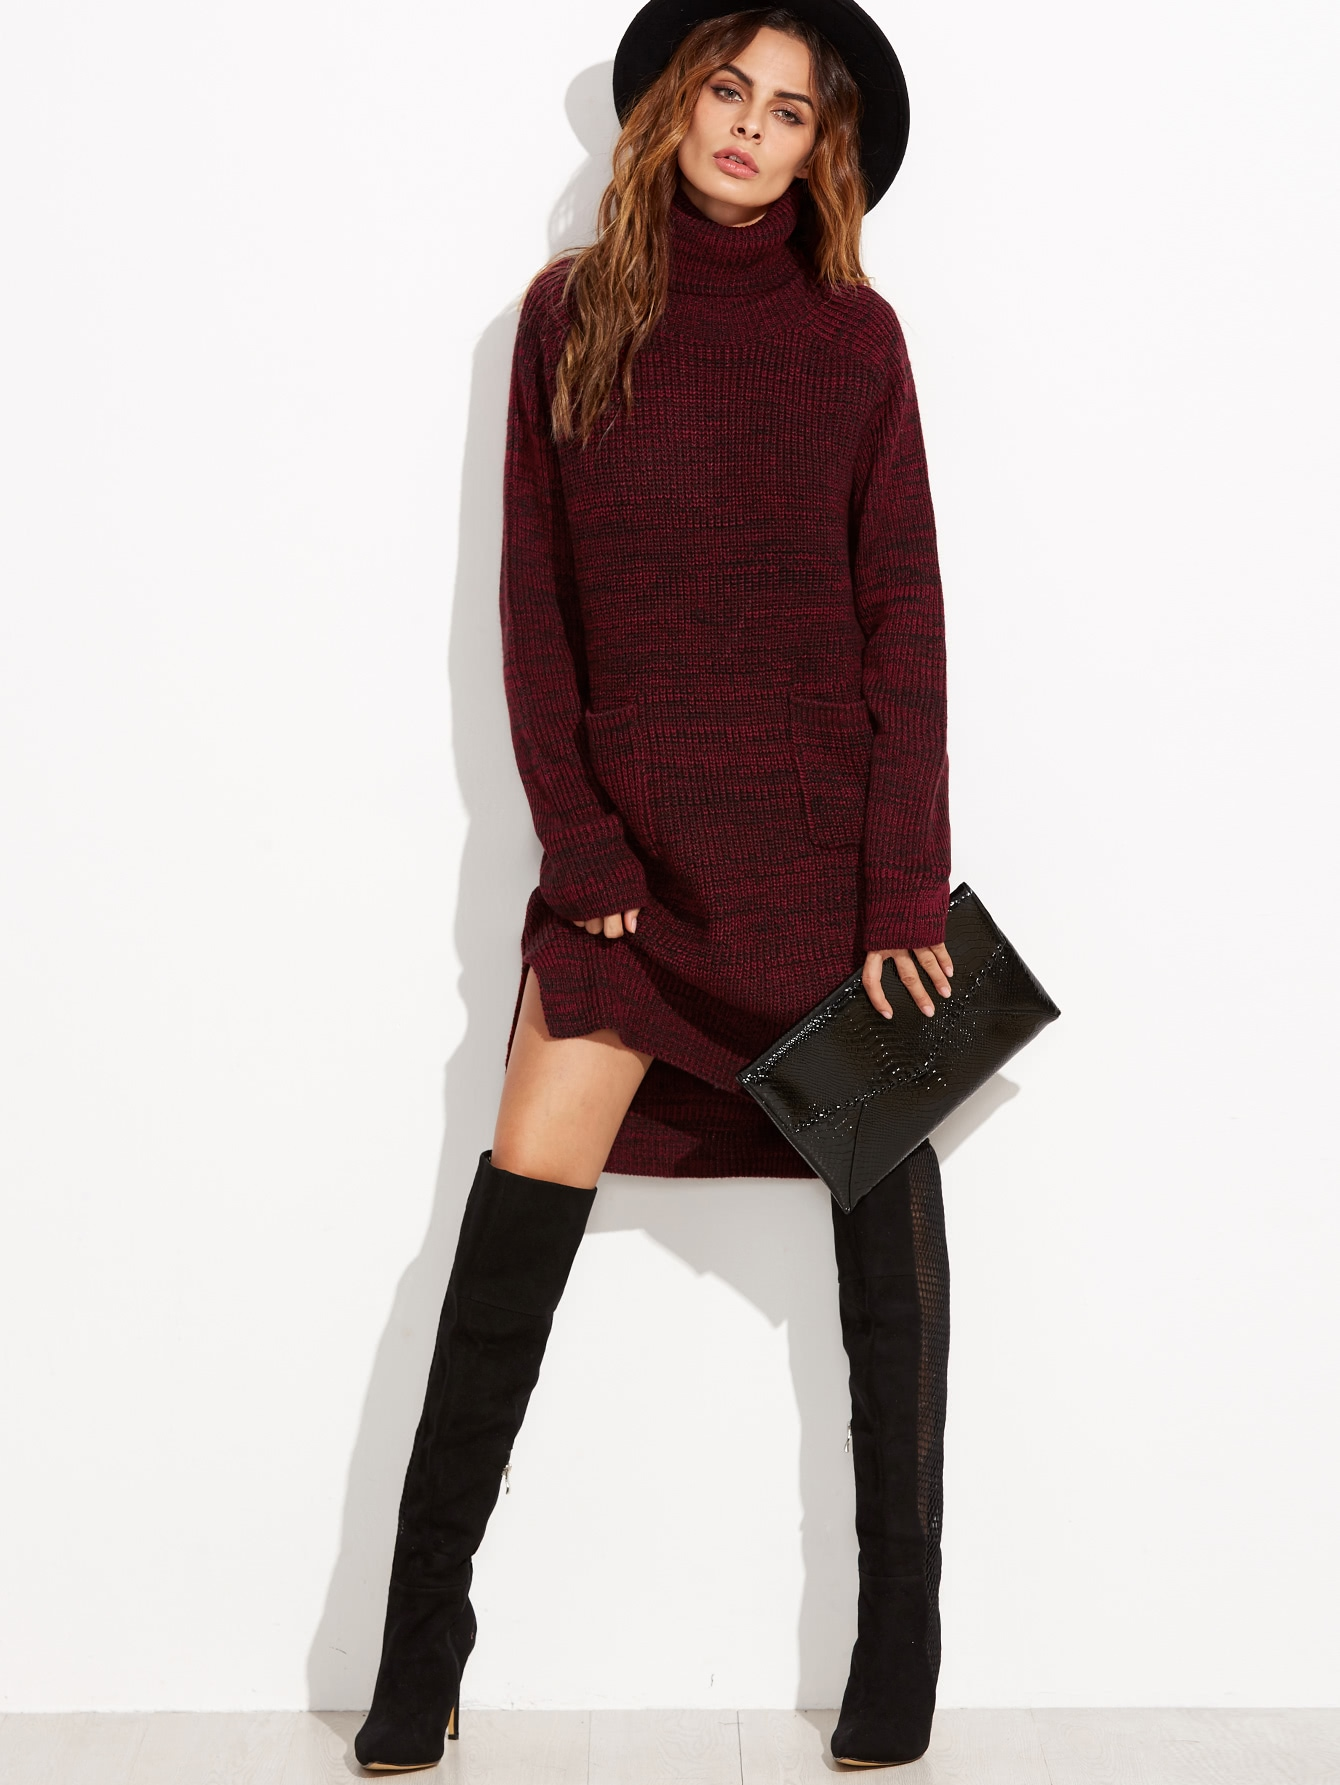 Burgundy Marled Knit Turtleneck High Low Sweater Dress 5pcs safety micro limit switch v 15 1c25 roller lever snap action 250v 16a s08 drop ship